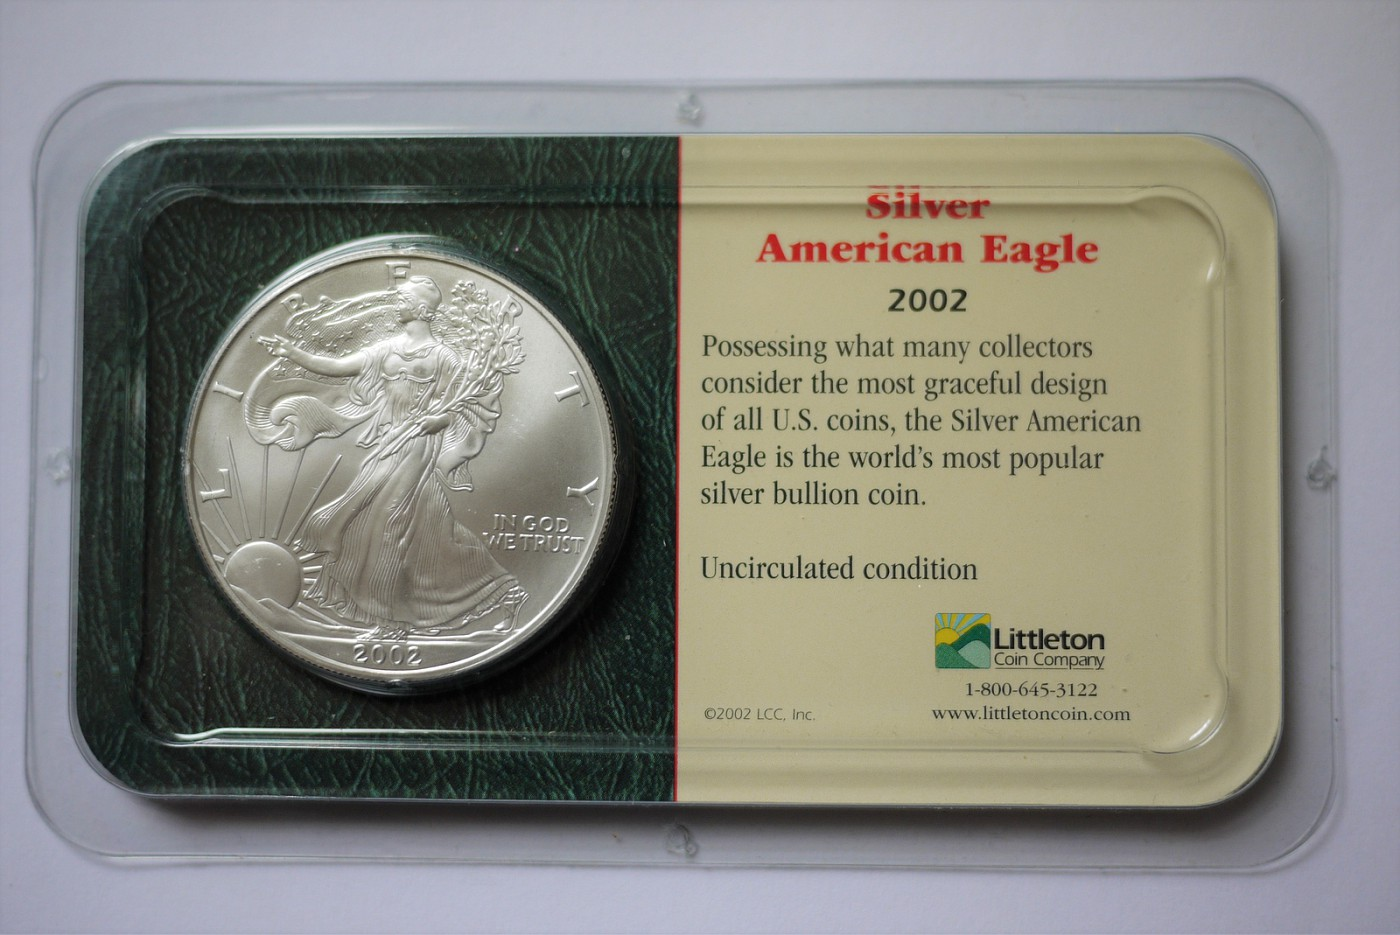 2004 Uncirculated 1 oz American Silver Eagle from Littleton Coin Company